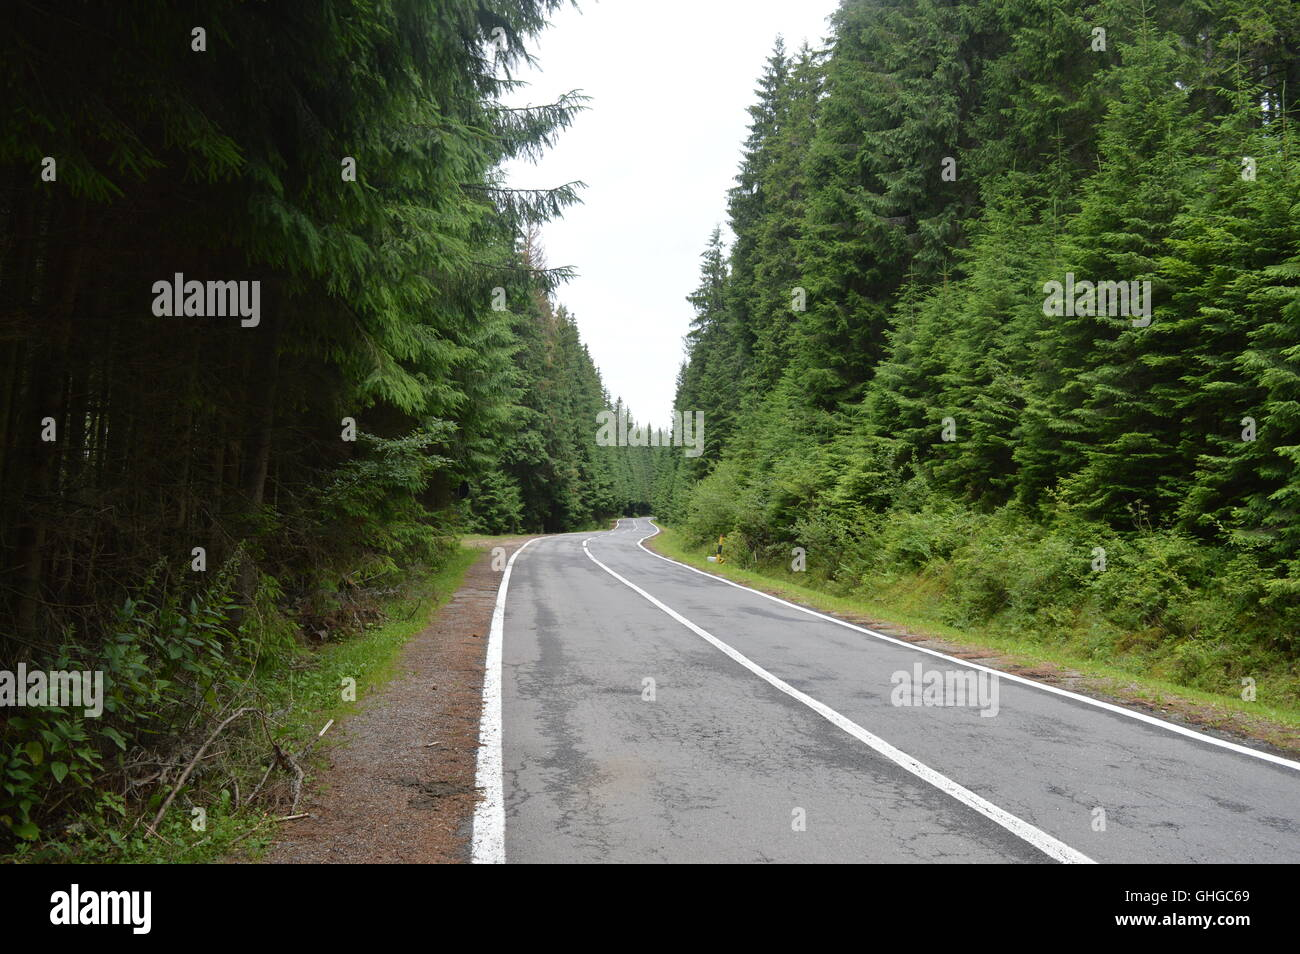 A road through a forest of conifers - Stock Image